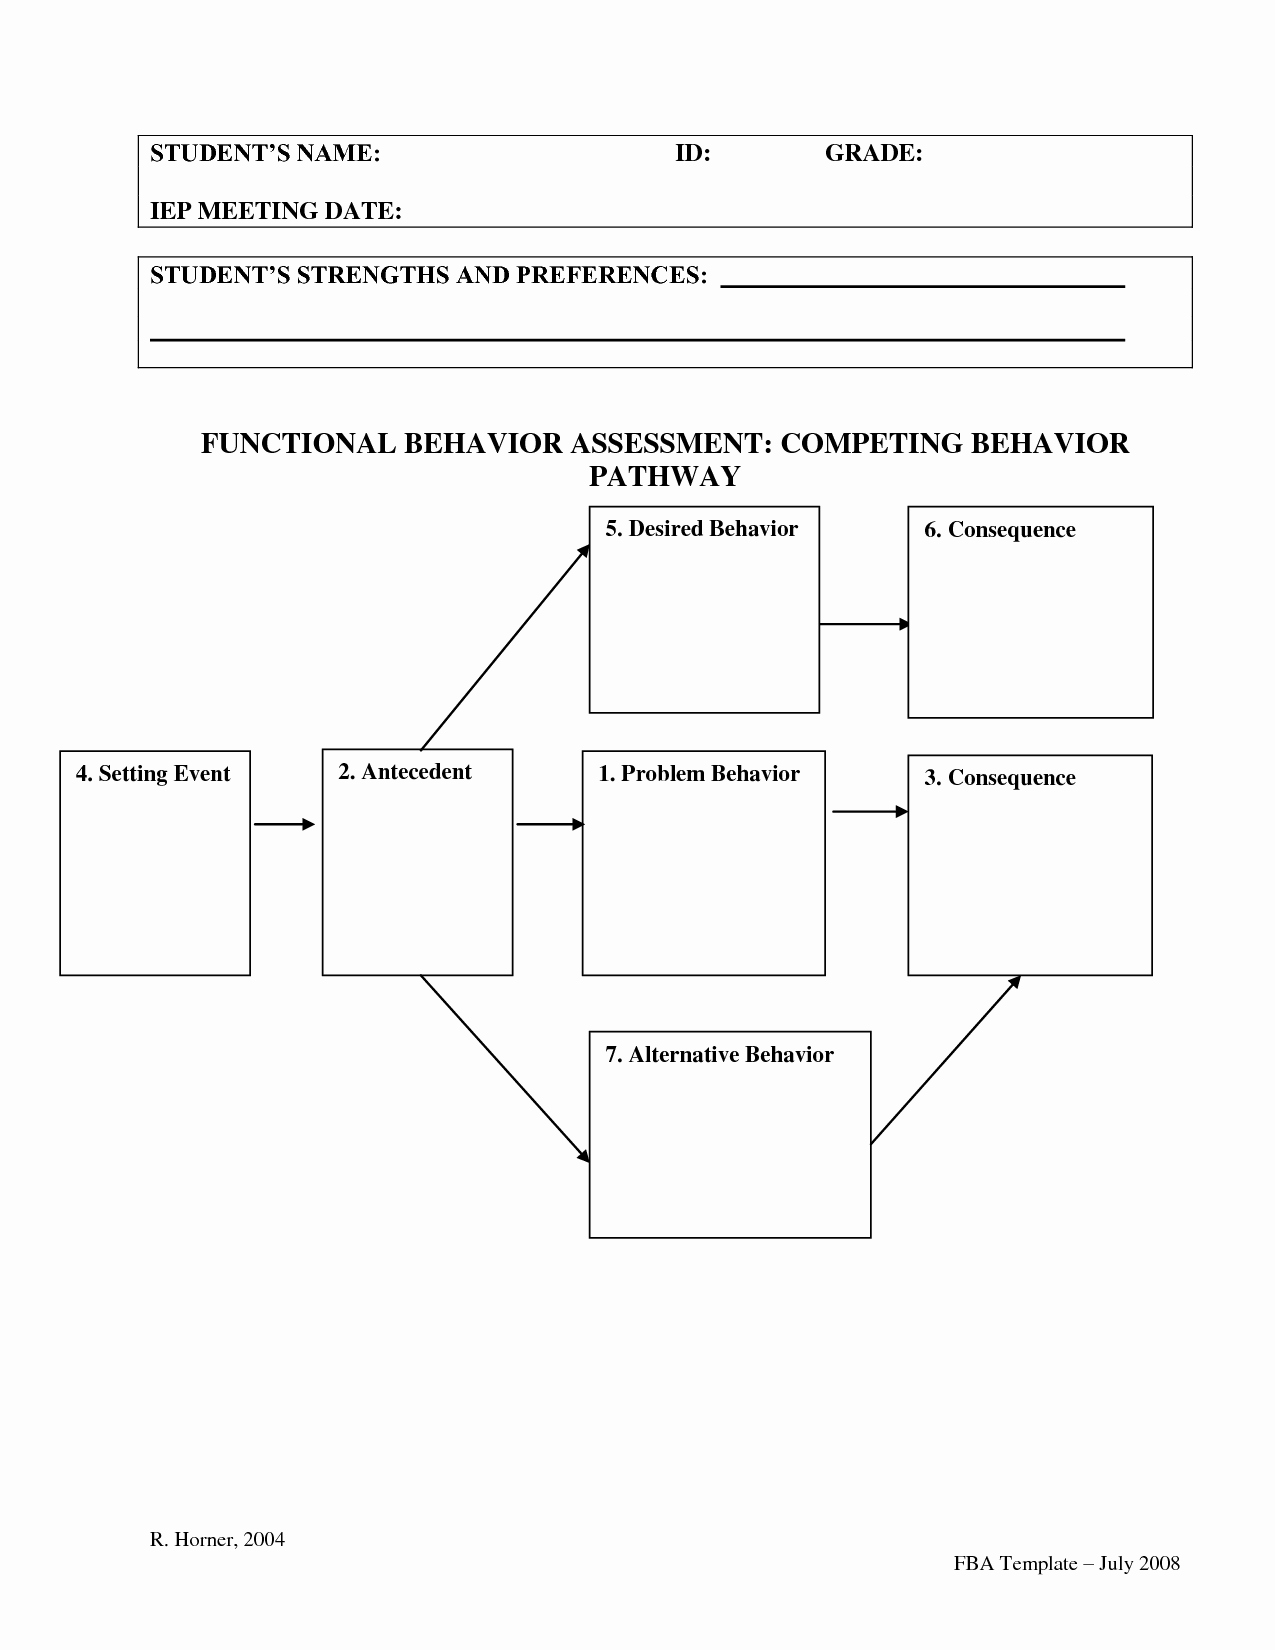 Positive Behavior Support Plan Template Elegant Fba Templates Yahoo Image Search Results